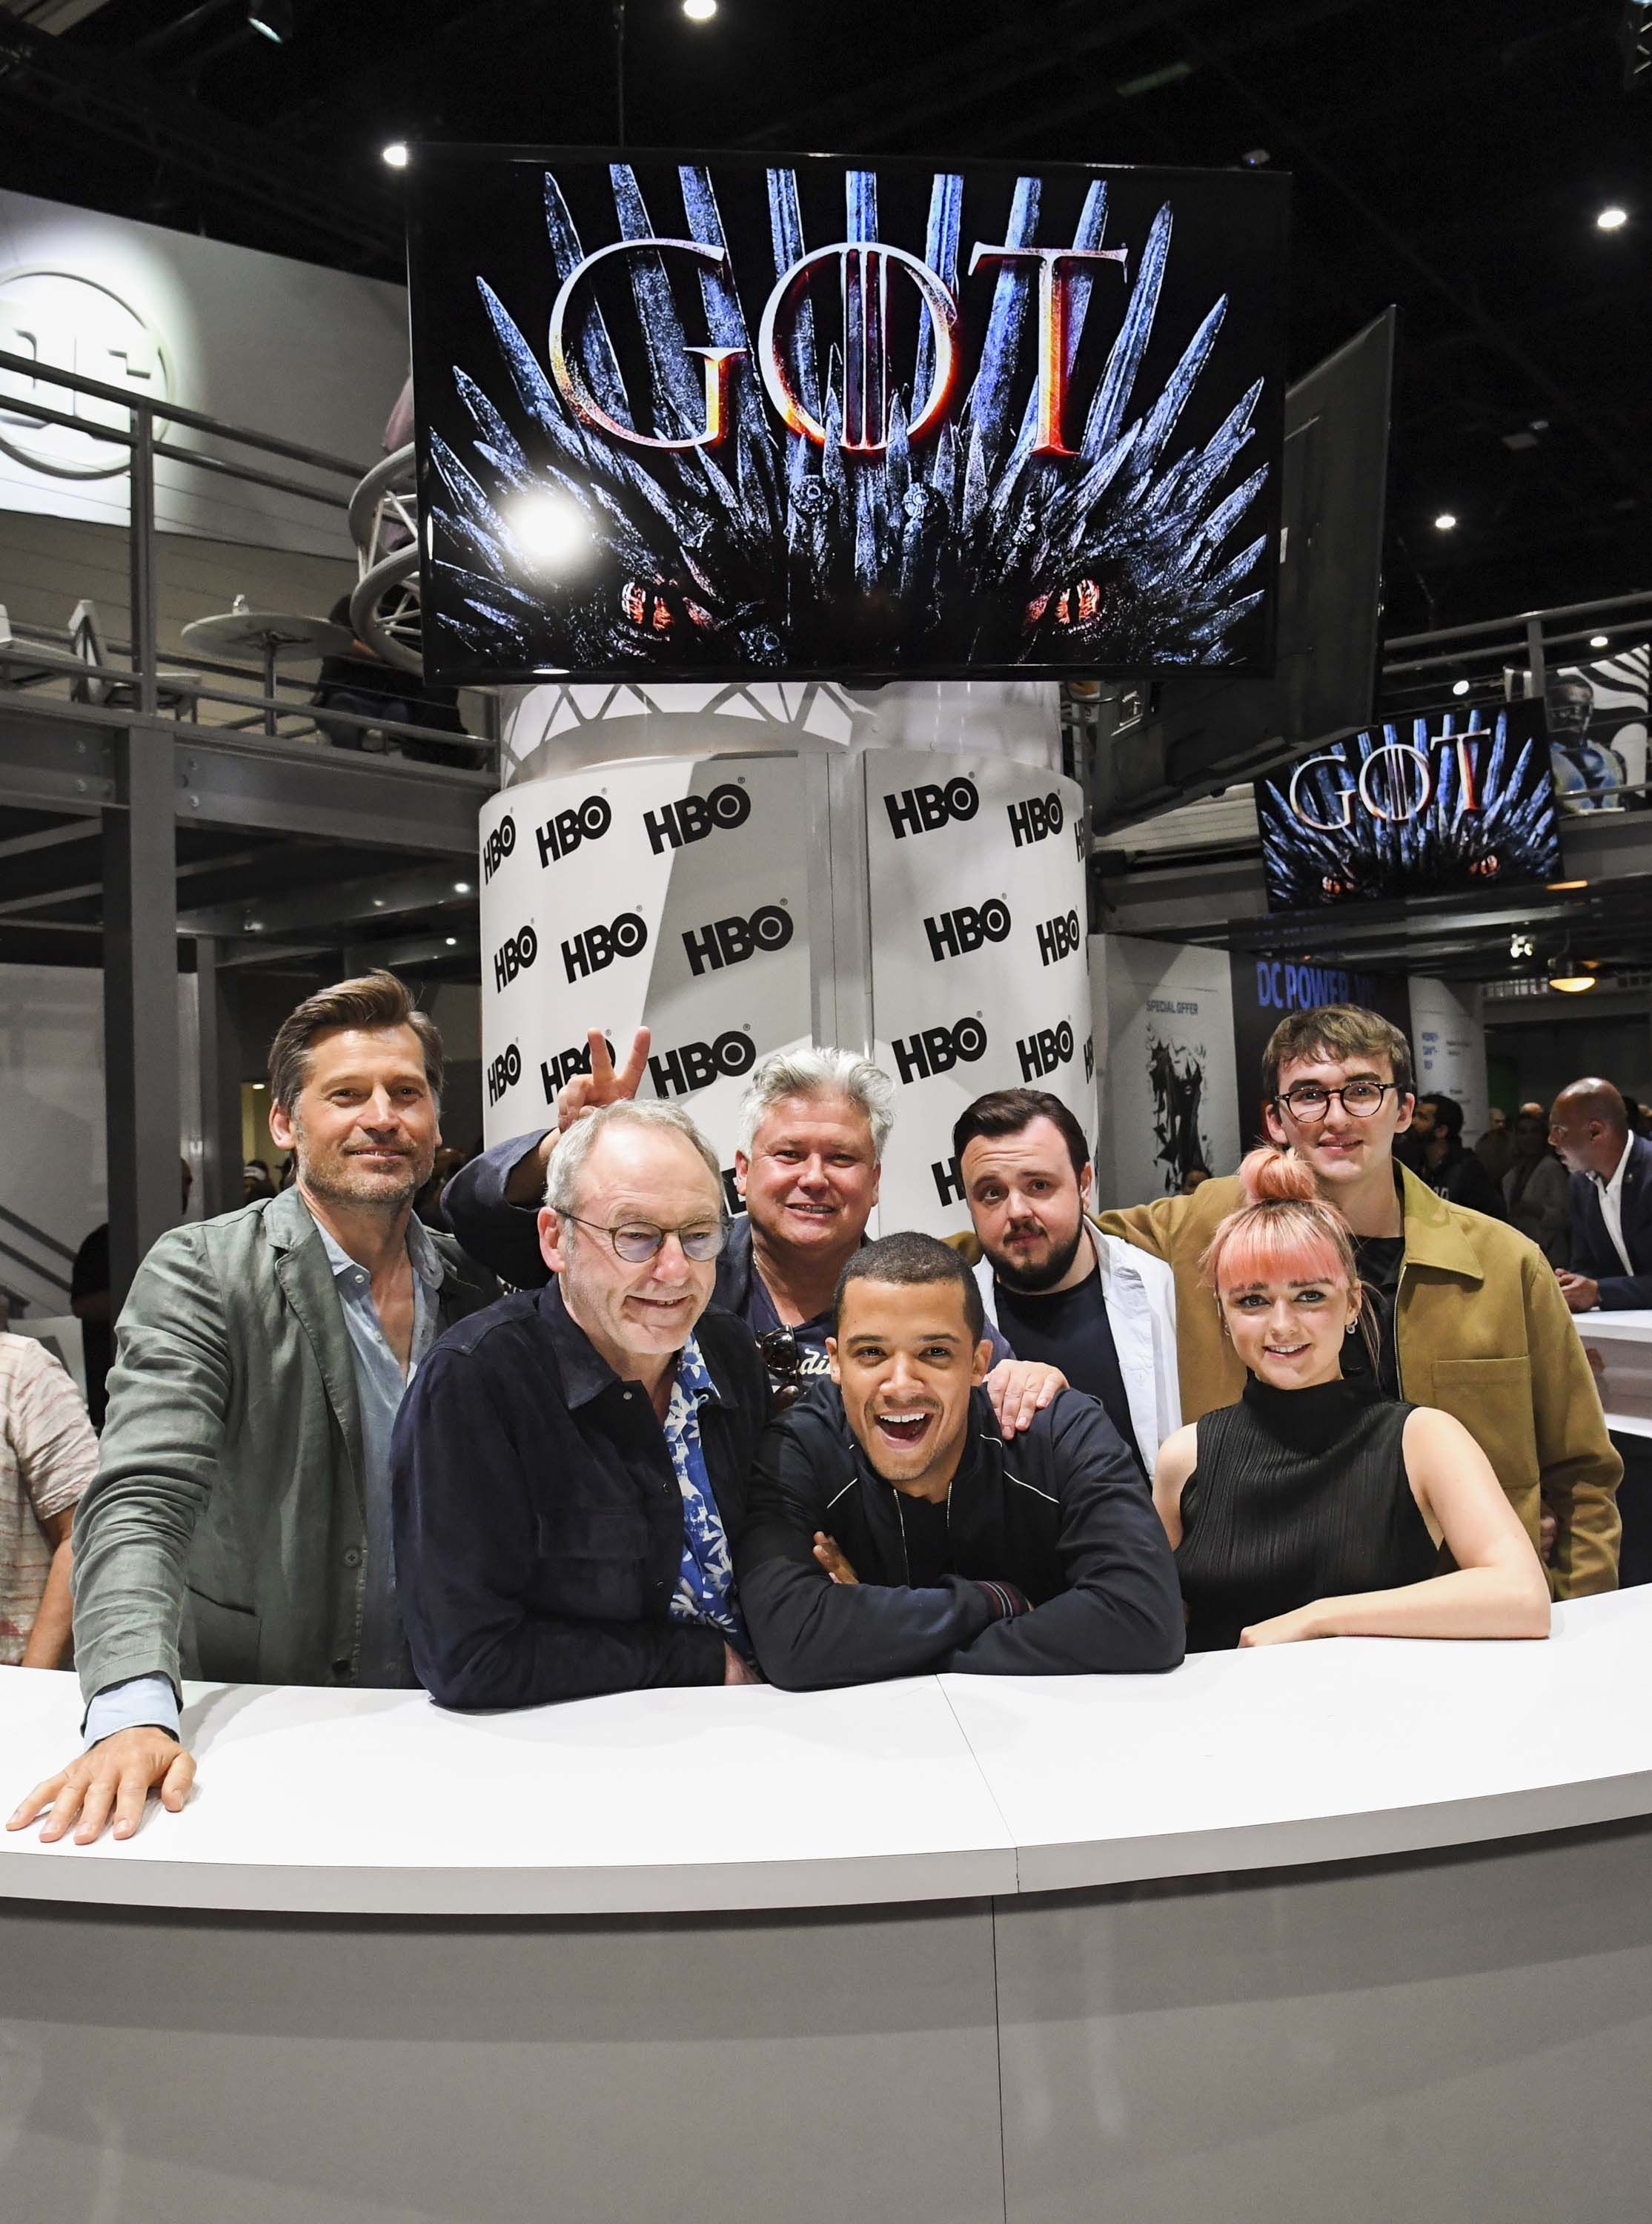 The Game of Thrones Cast Responded to Finale Backlash and the Infamous Petition at Comic Con